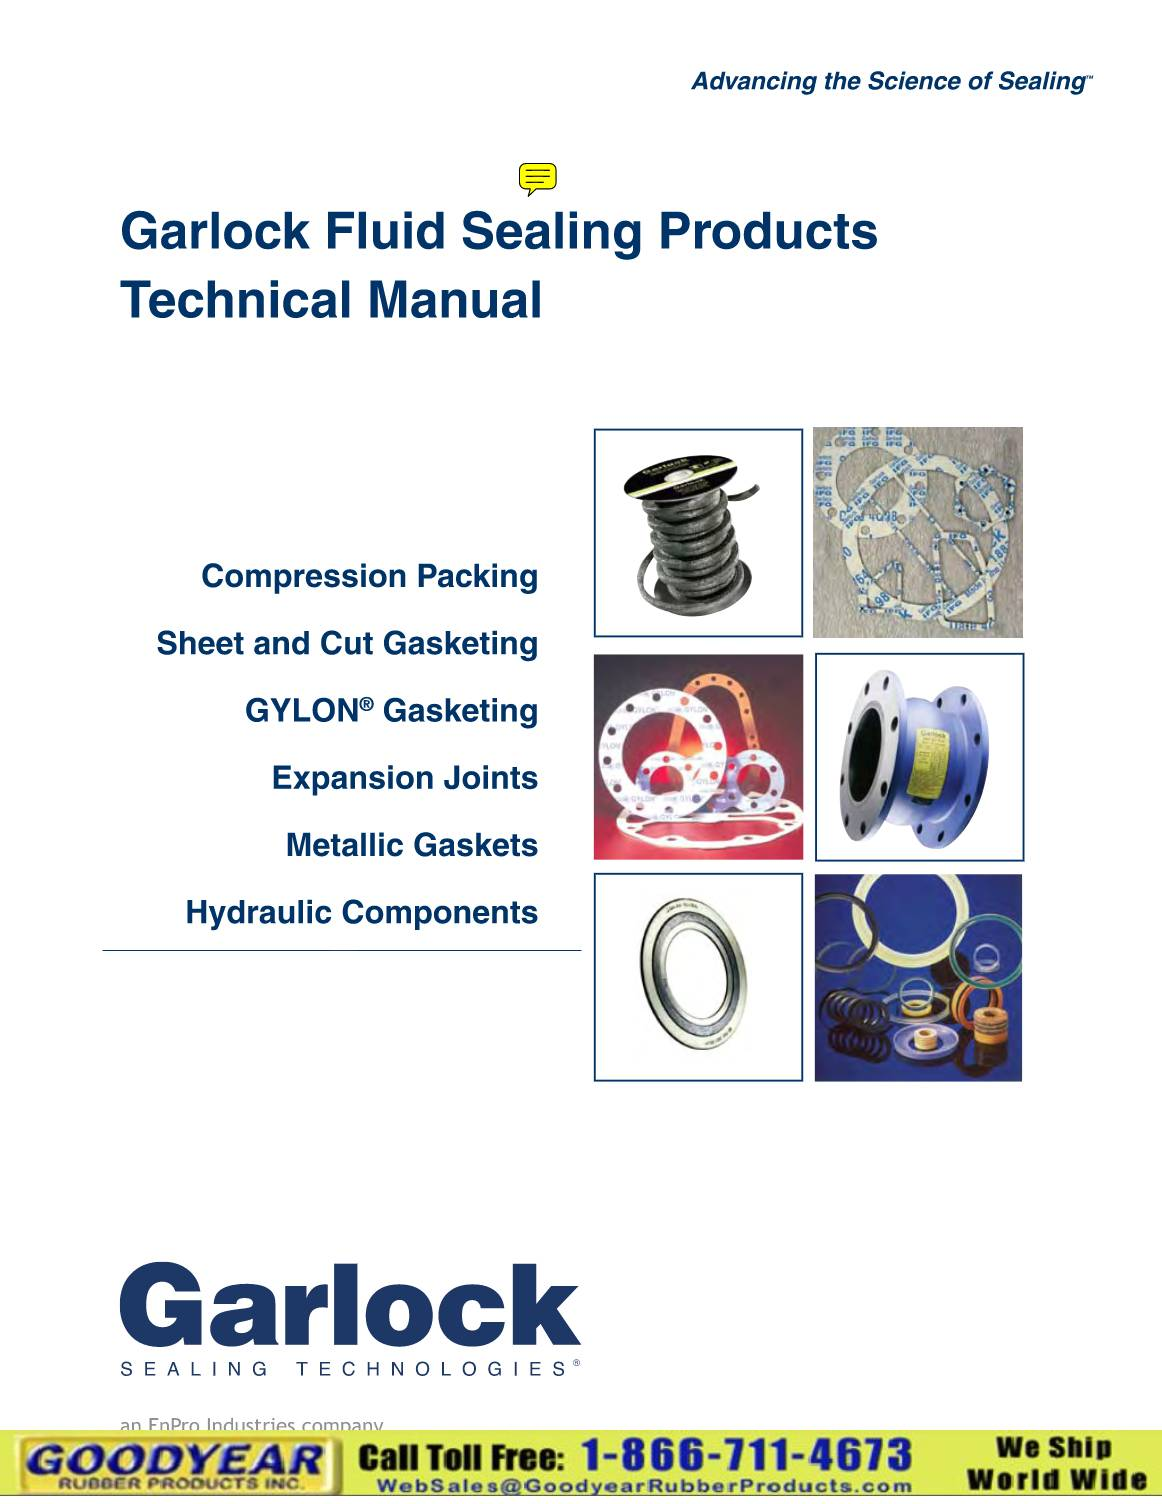 Garlock Fluid Sealing